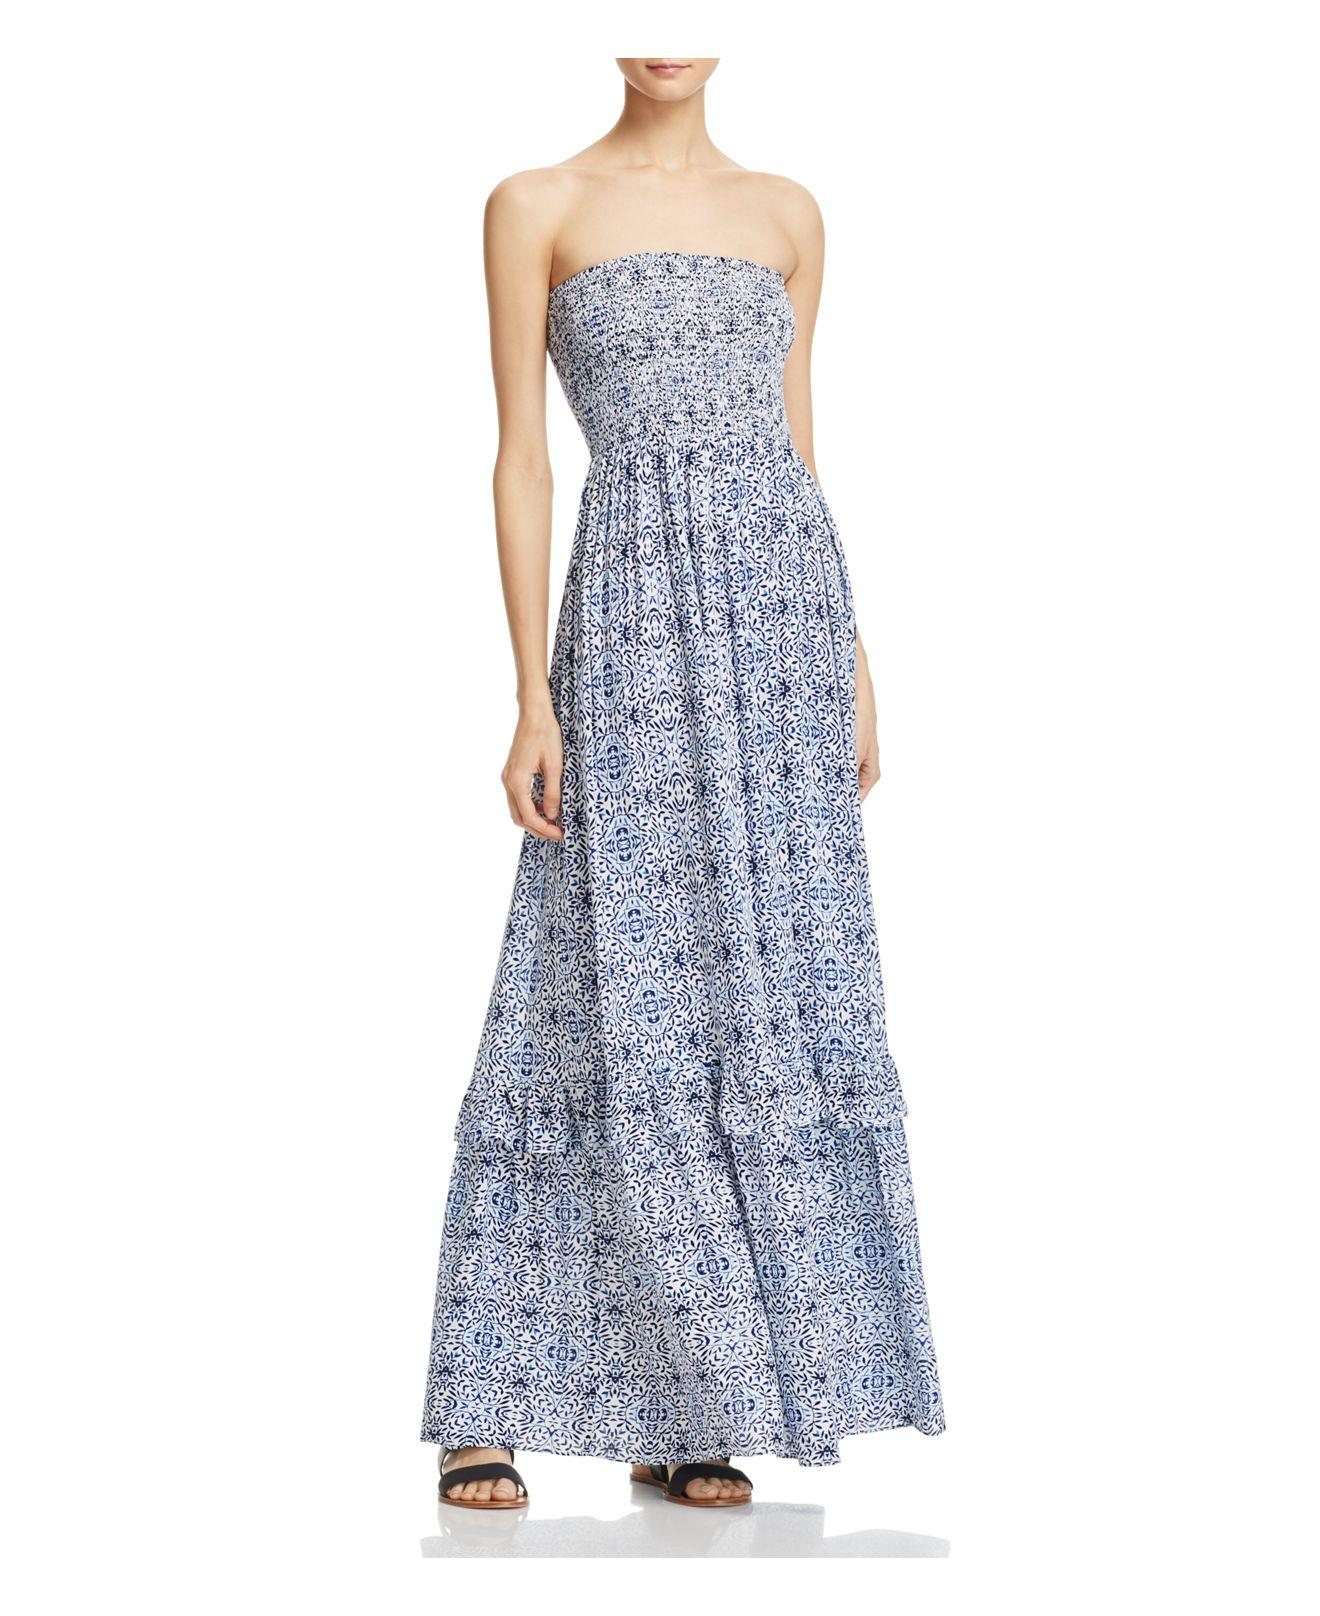 f854a5990a7c65 Lyst - Cooper   Ella Nina Strapless Maxi Dress in Blue